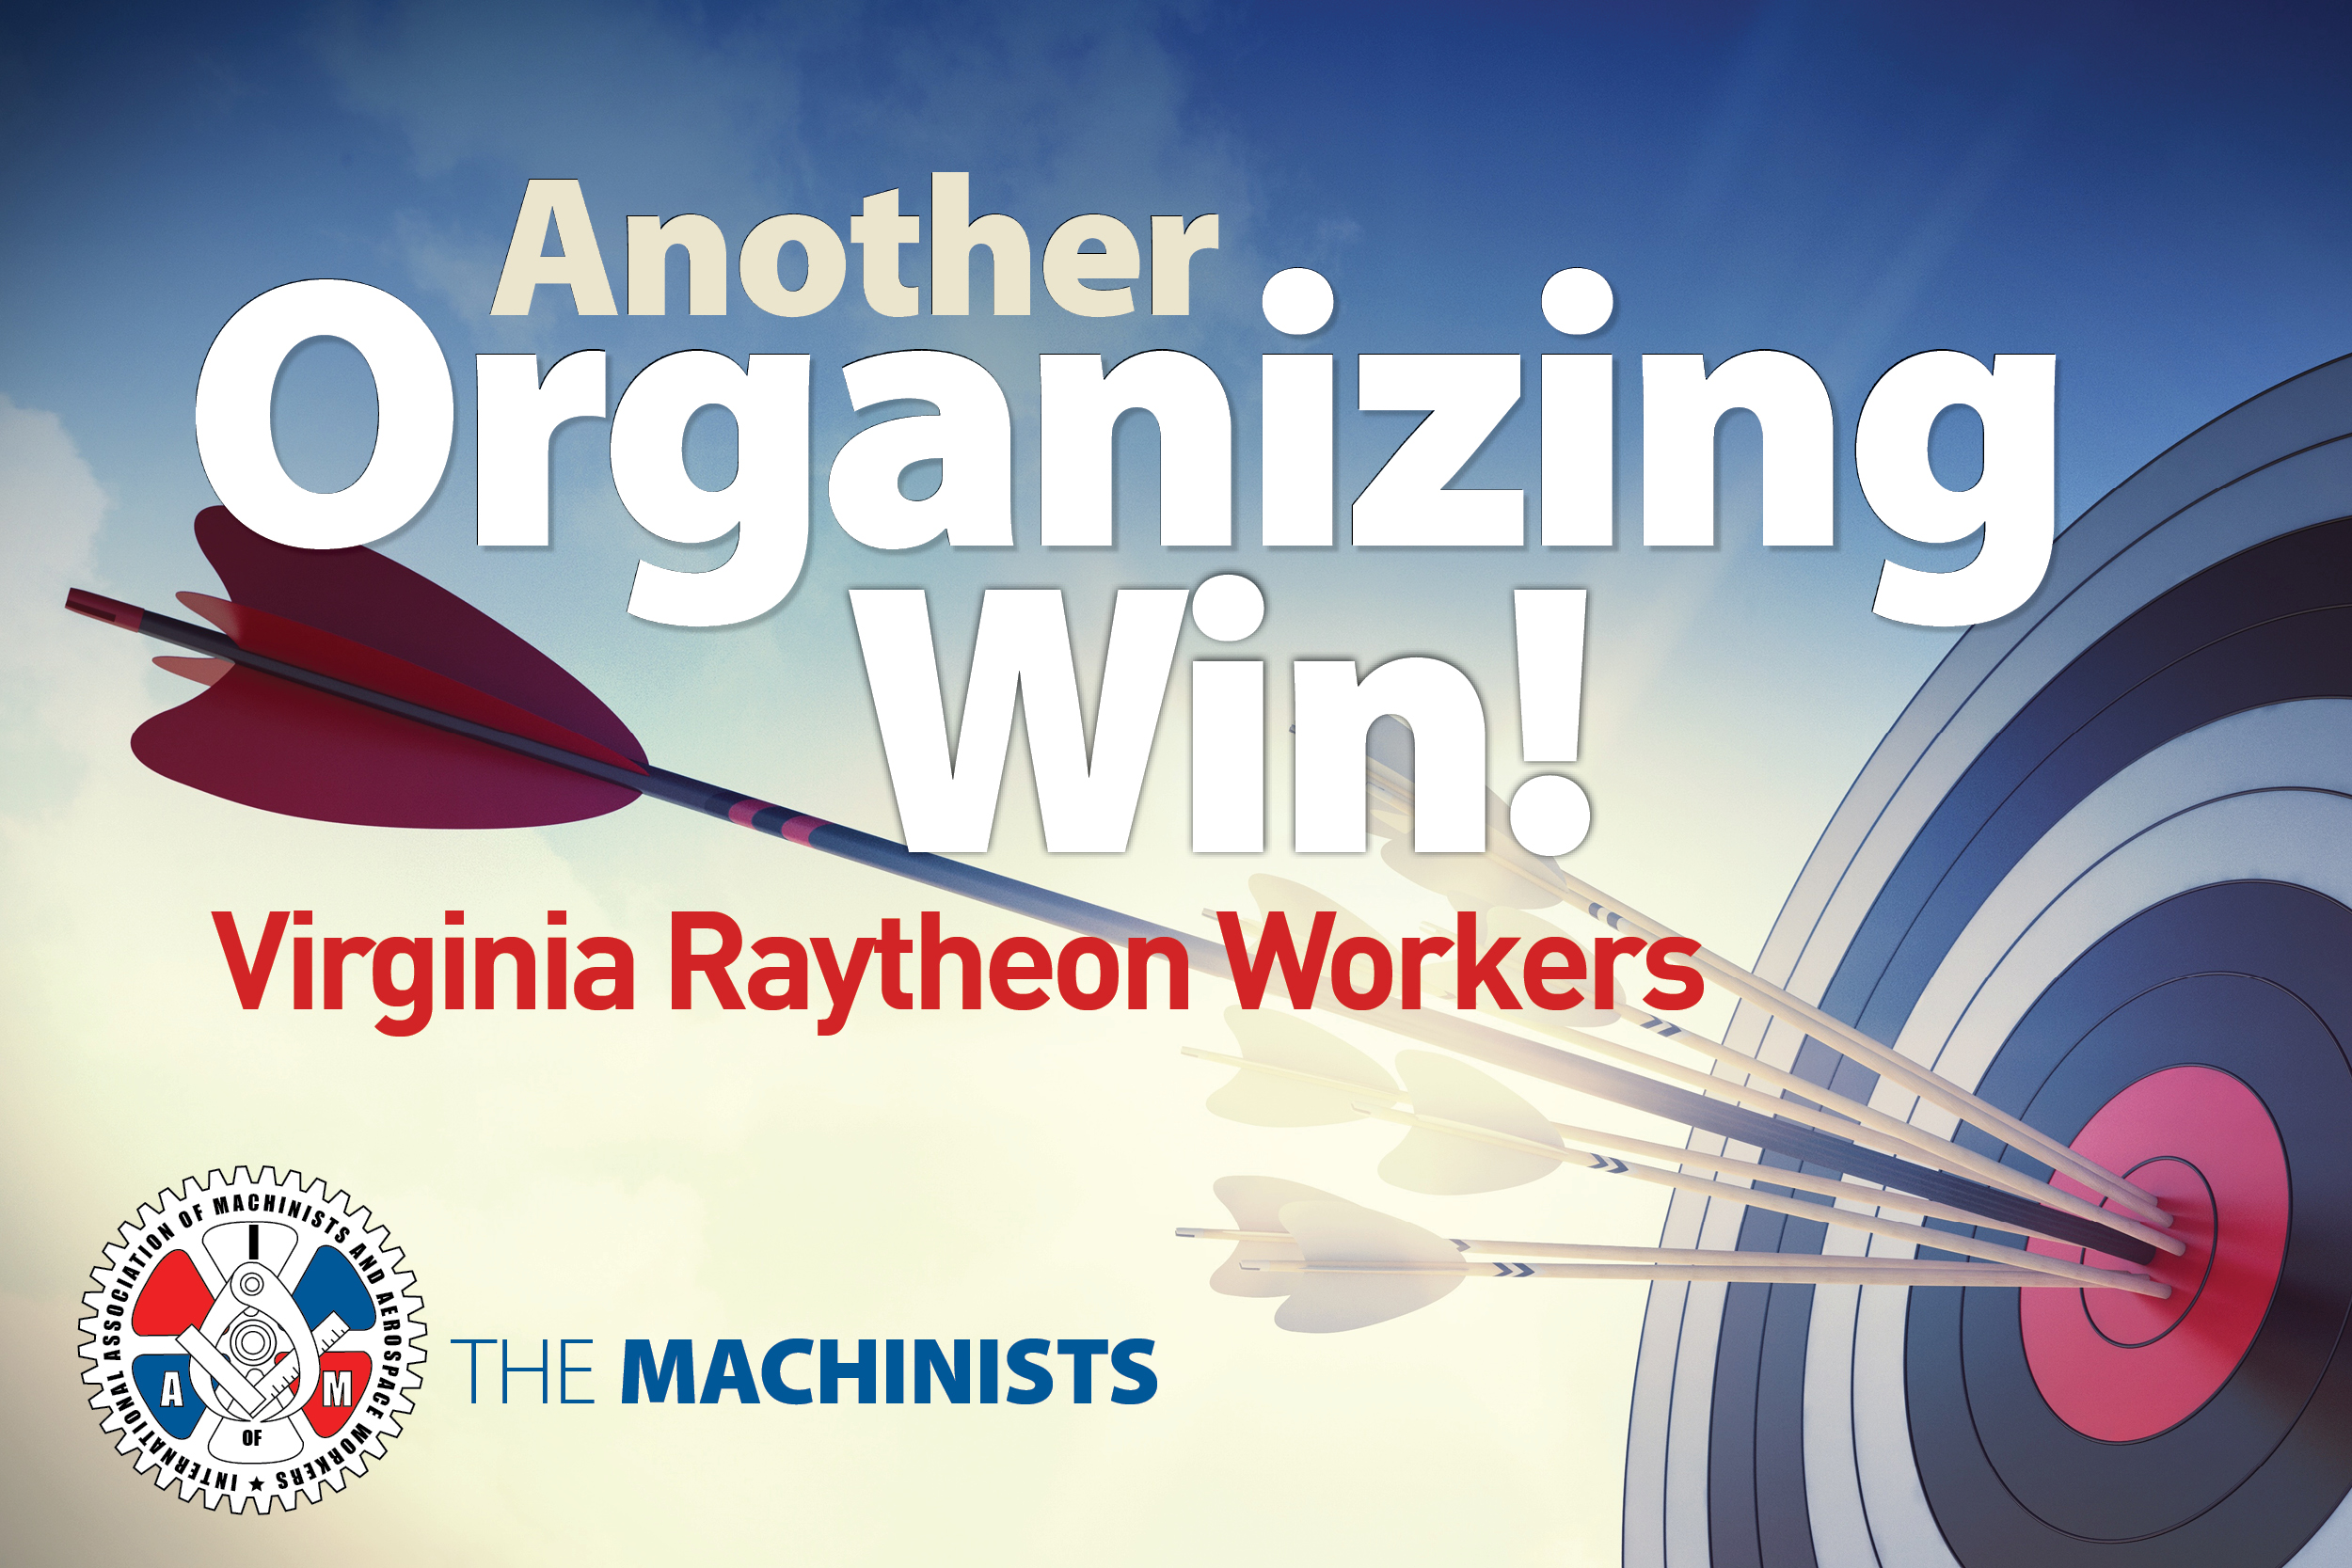 Chesapeake Raytheon Workers Vote Overwhelmingly to Join Machinists Union